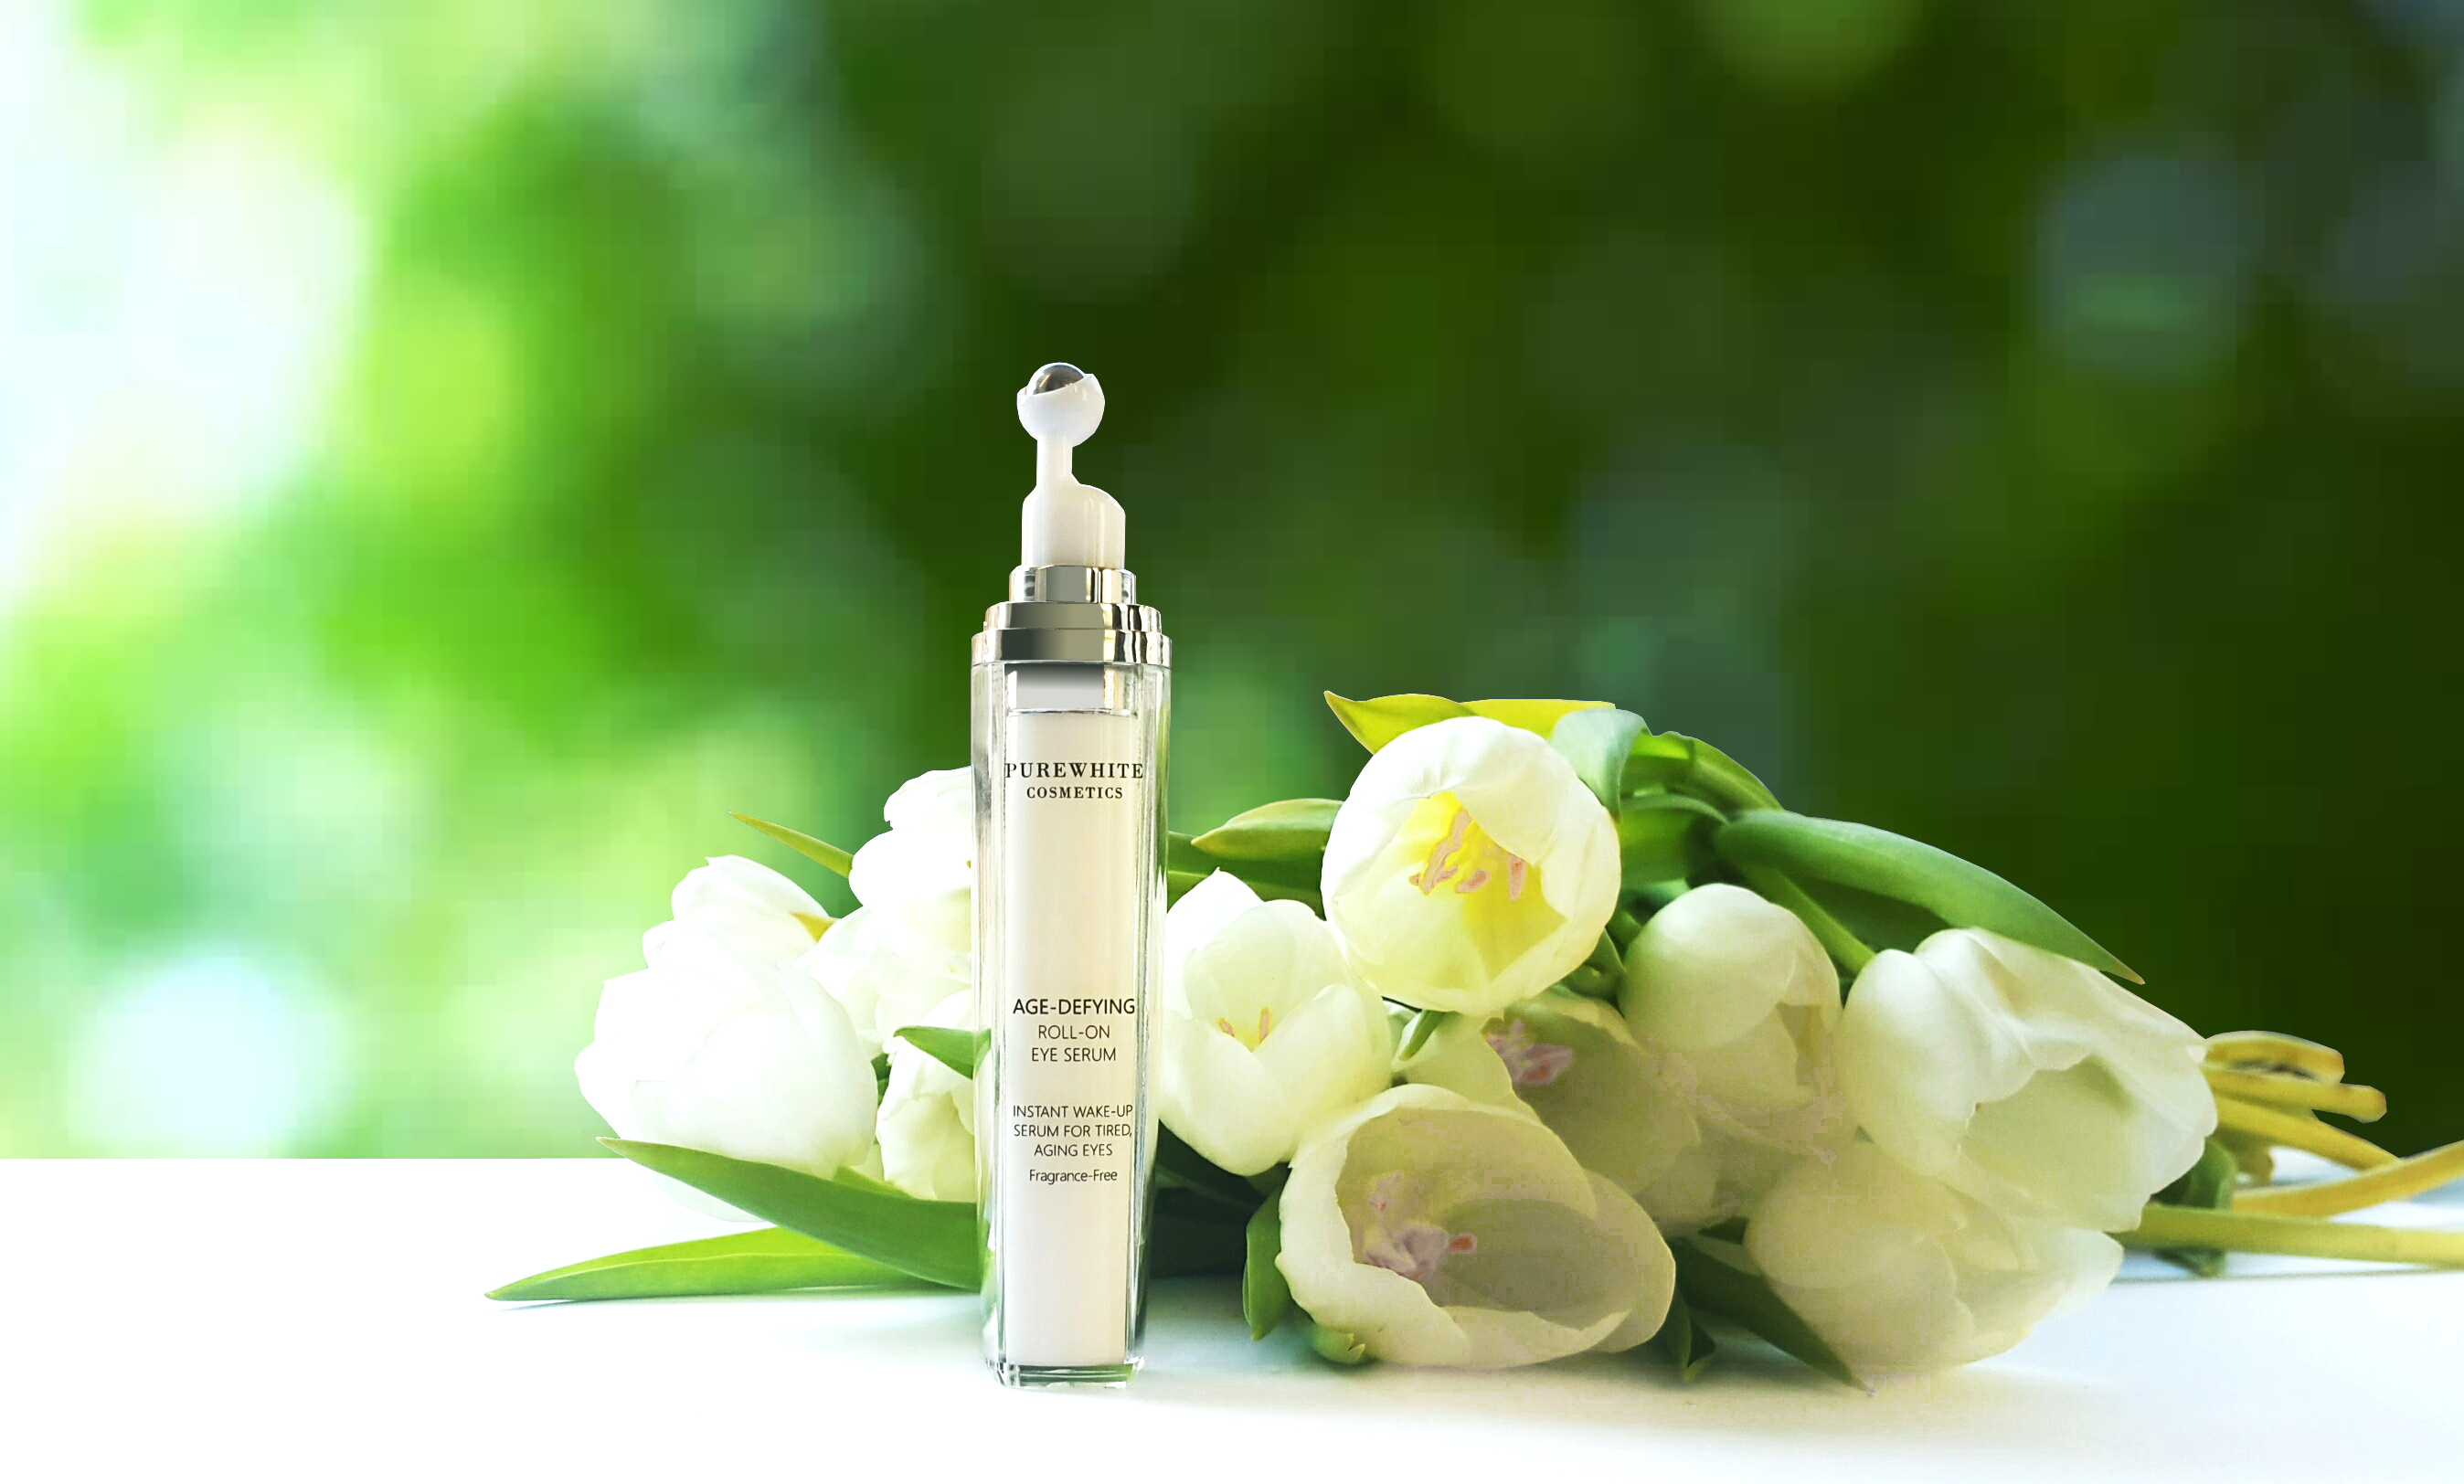 Pure White Cosmetics - Introducing NEW Age-Defying Roll-on Eye Serum